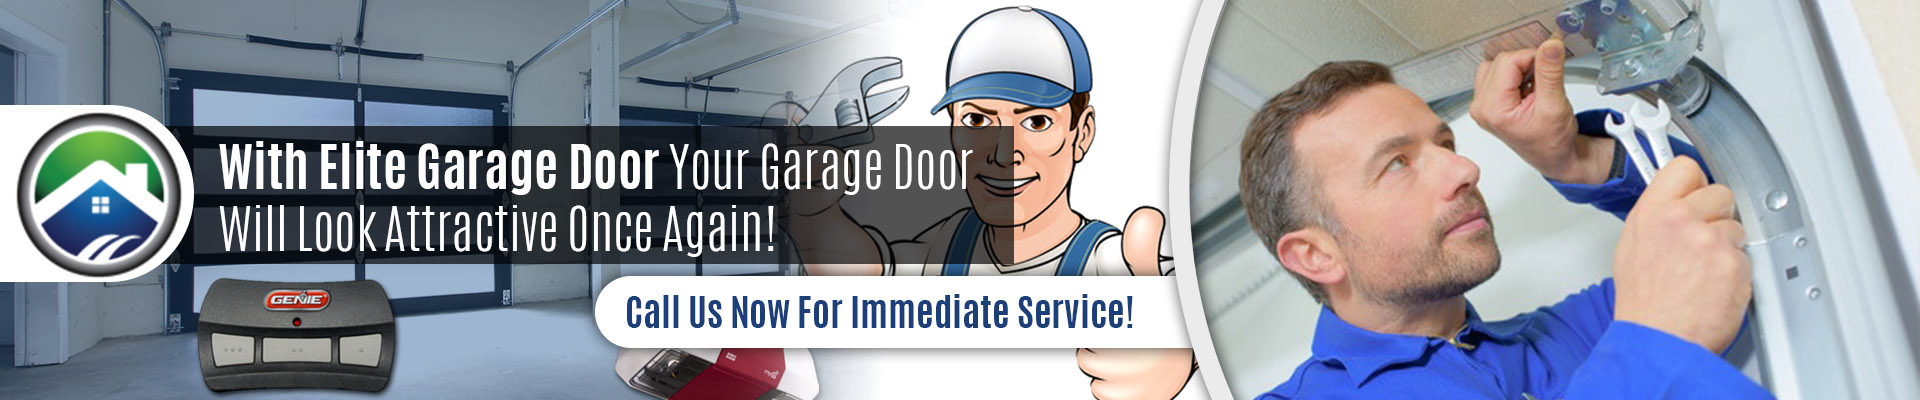 Garage Door Off Track Repair - Elite Garage Door